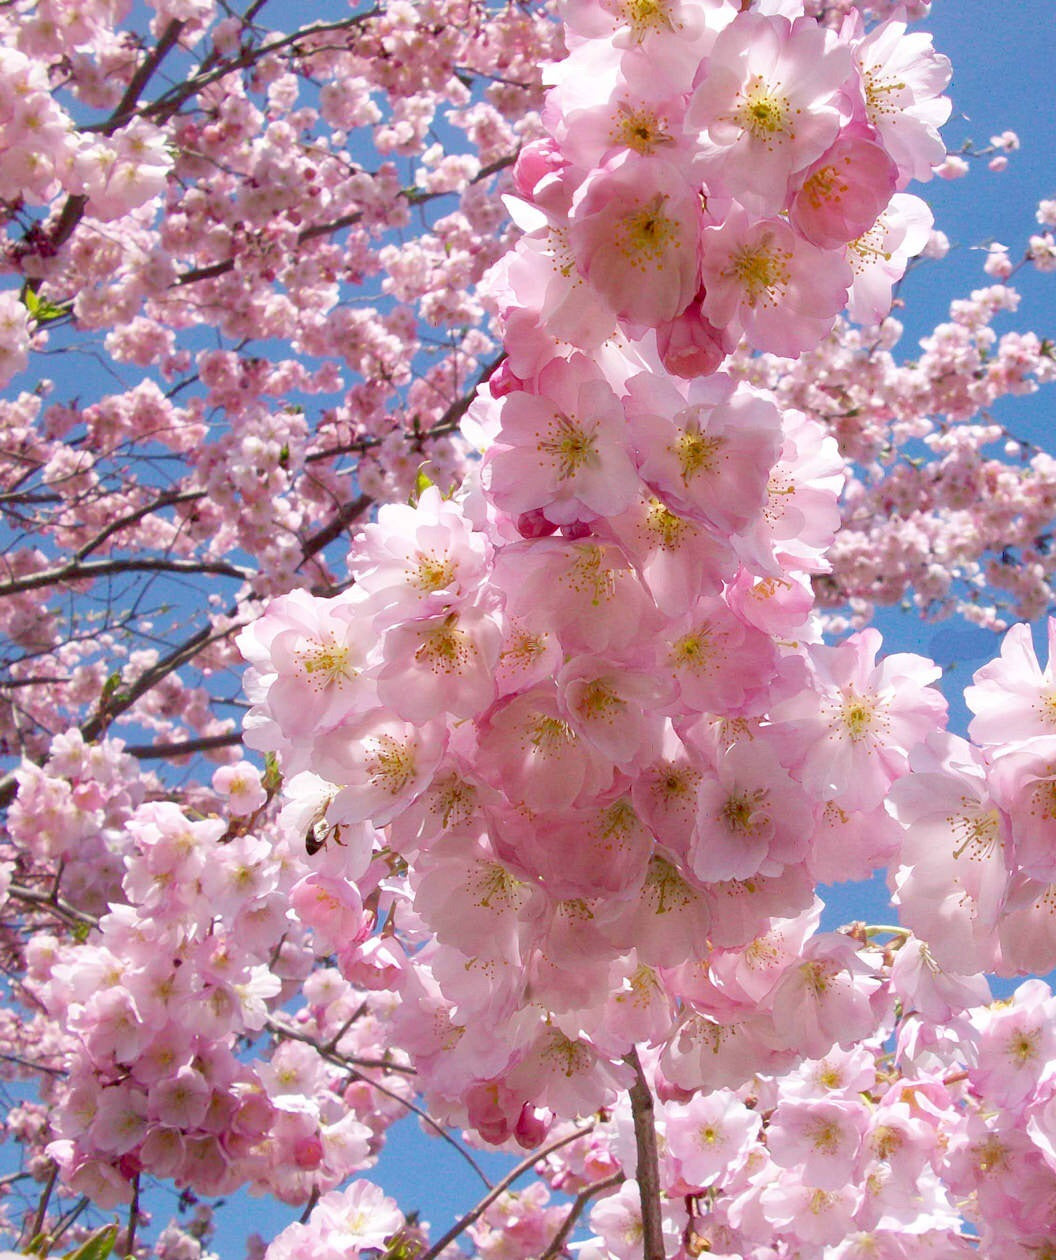 Accolade Cherry Blossom Tree Translucent Seashell Shaped Blossoms Online Orchards